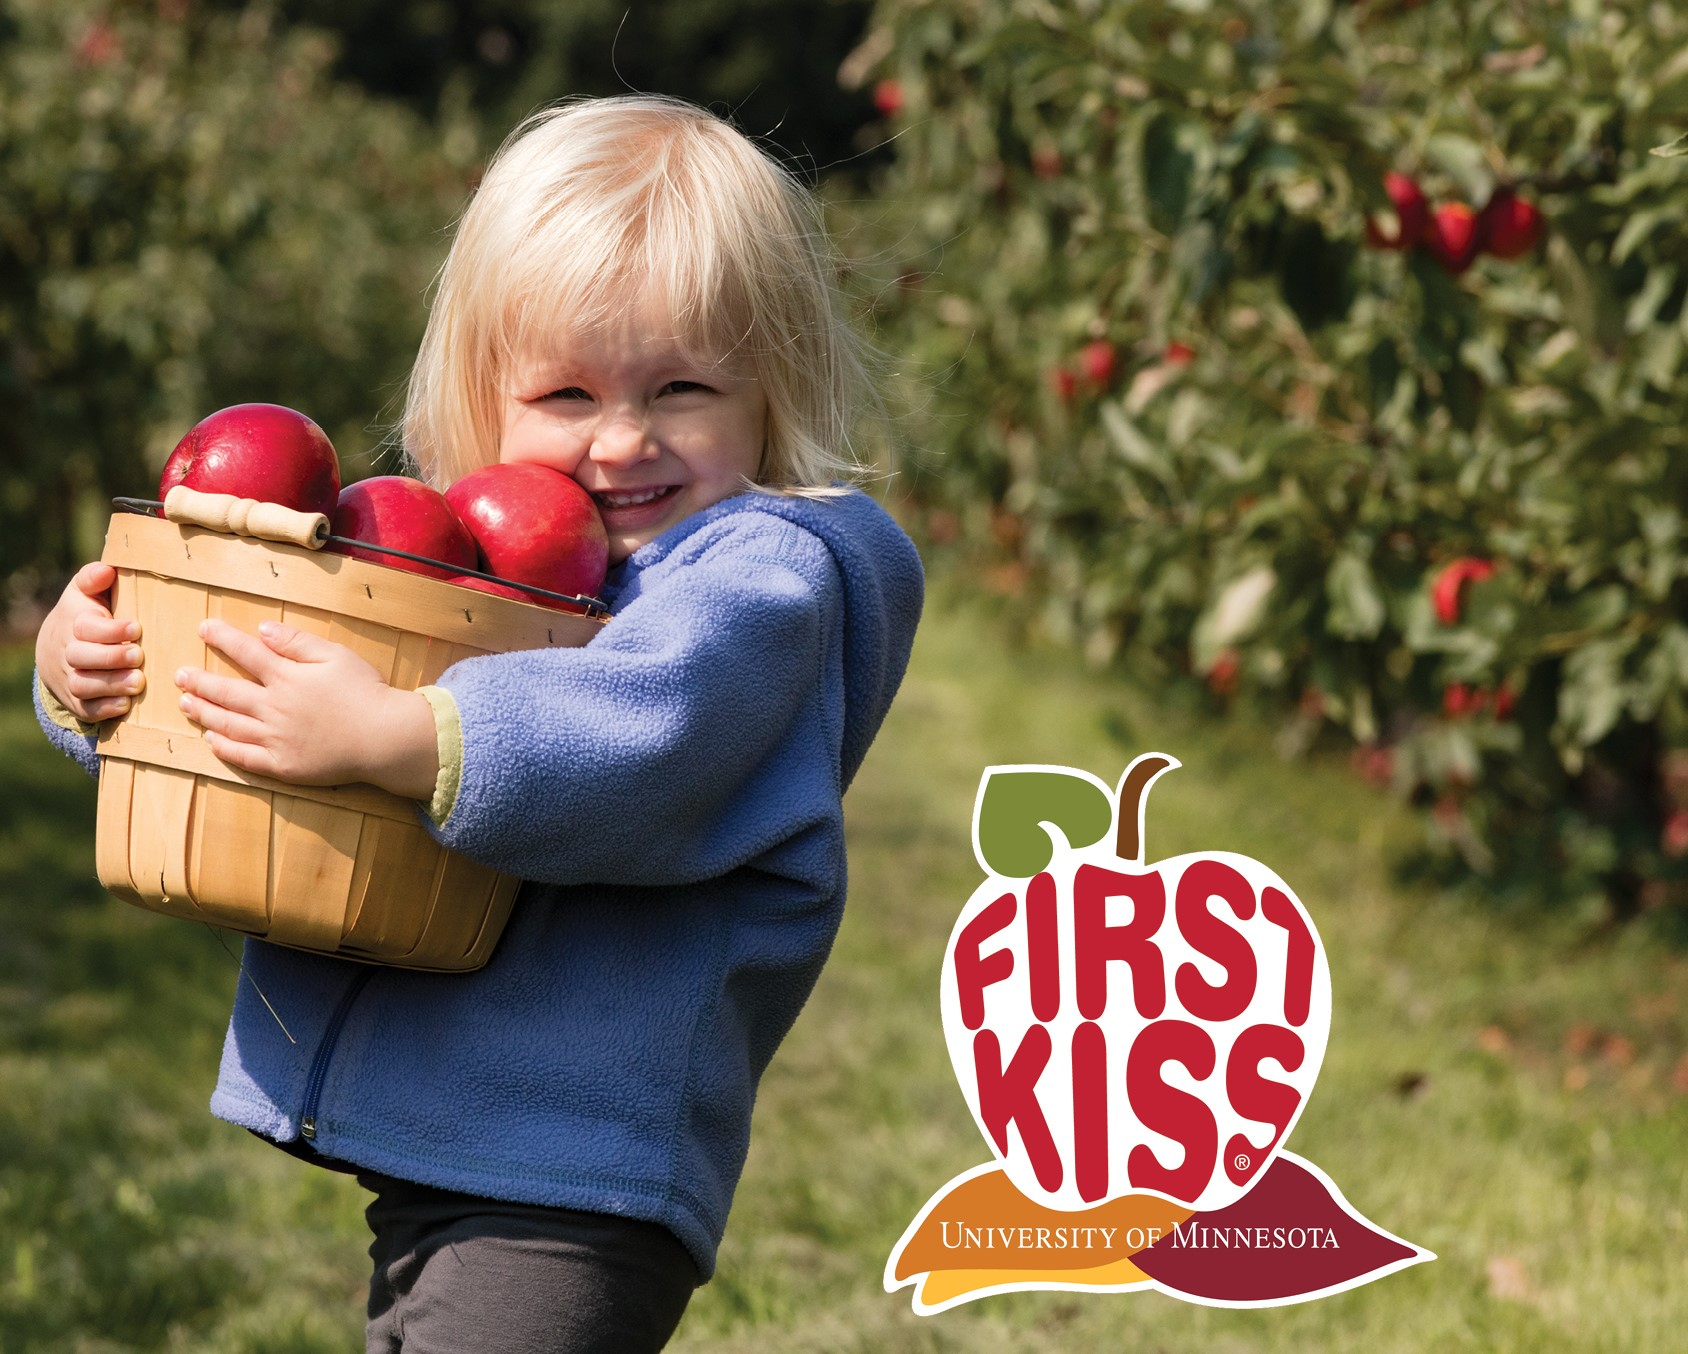 Little girl carrying a basket of apples with the logo First Kiss by University of Minnesota